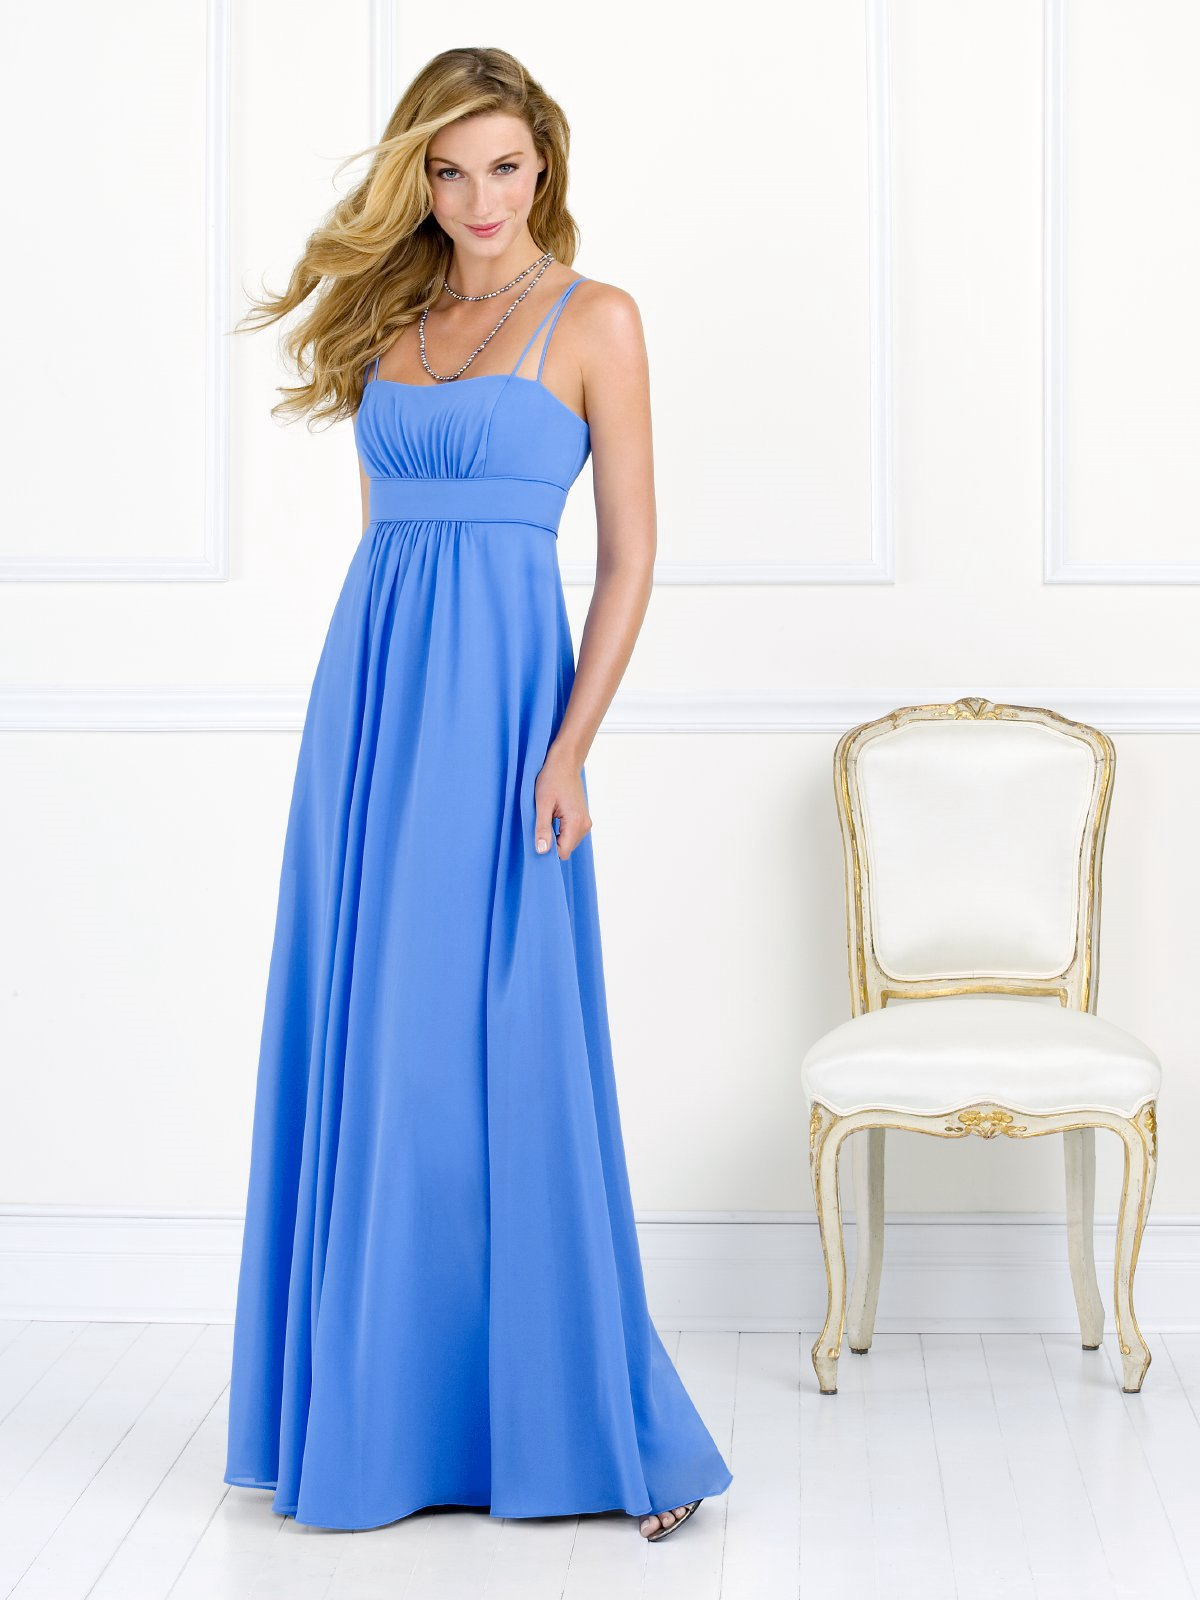 Blue Empire Spaghetti Straps Zipper Pleated Floor Length Chiffon Prom Dresses